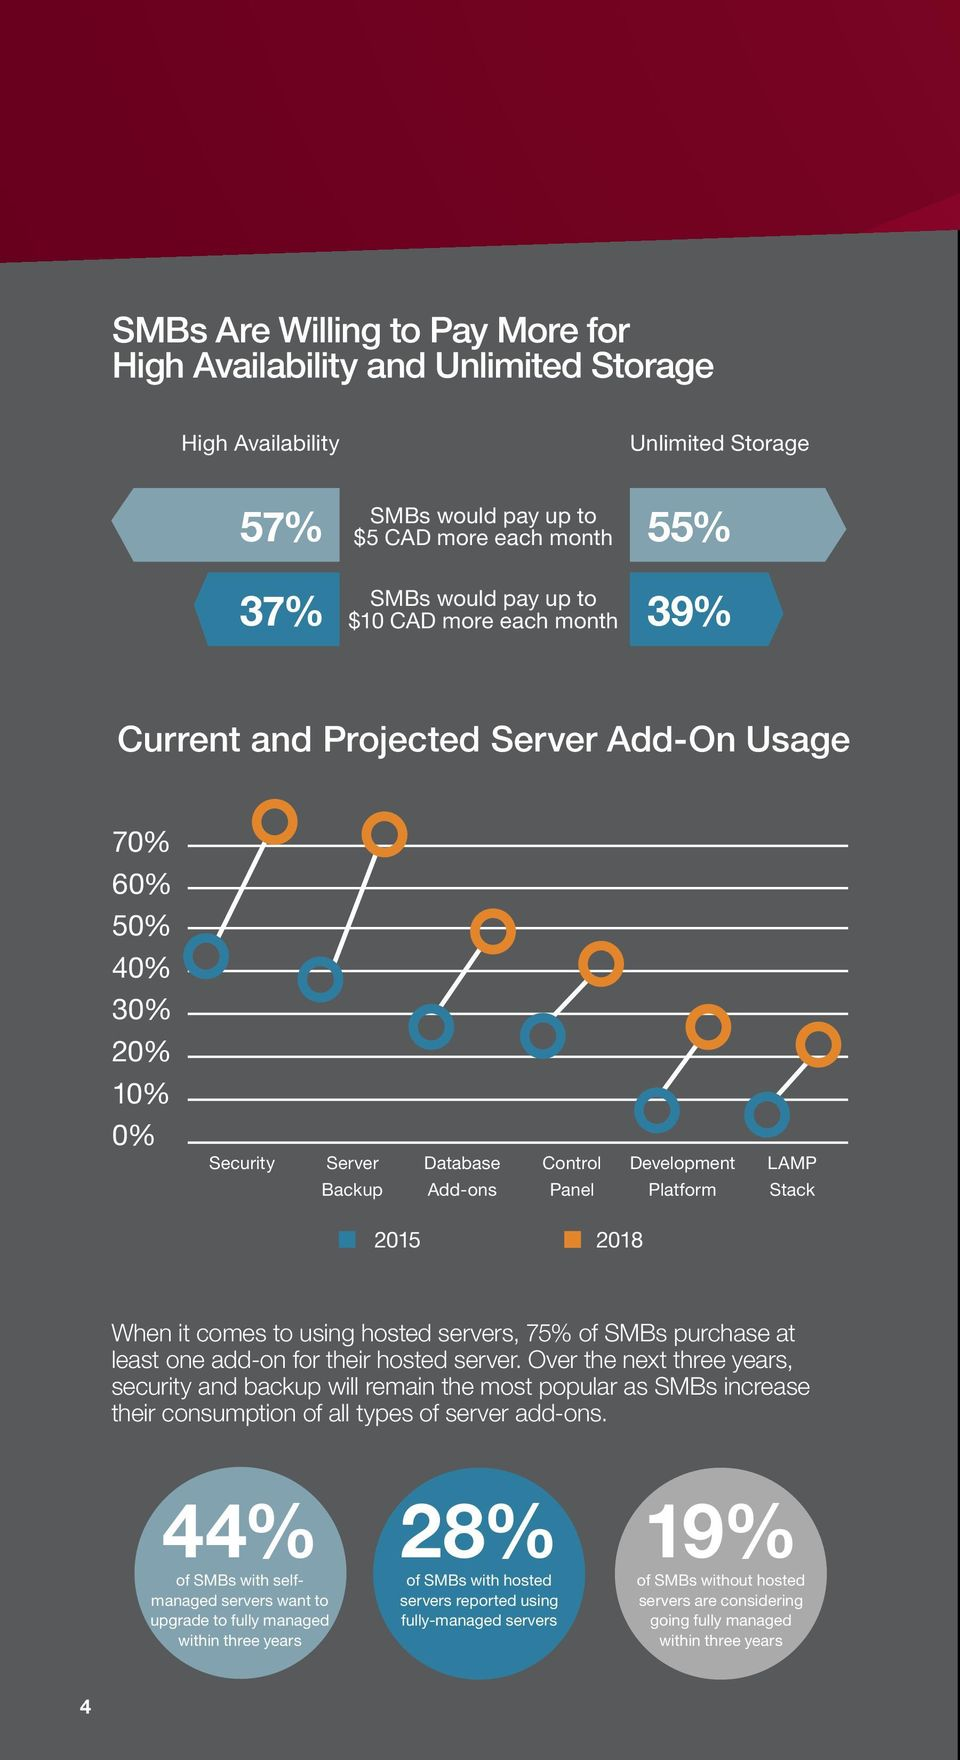 using hosted servers, 75% of SMBs purchase at least one add-on for their hosted server.